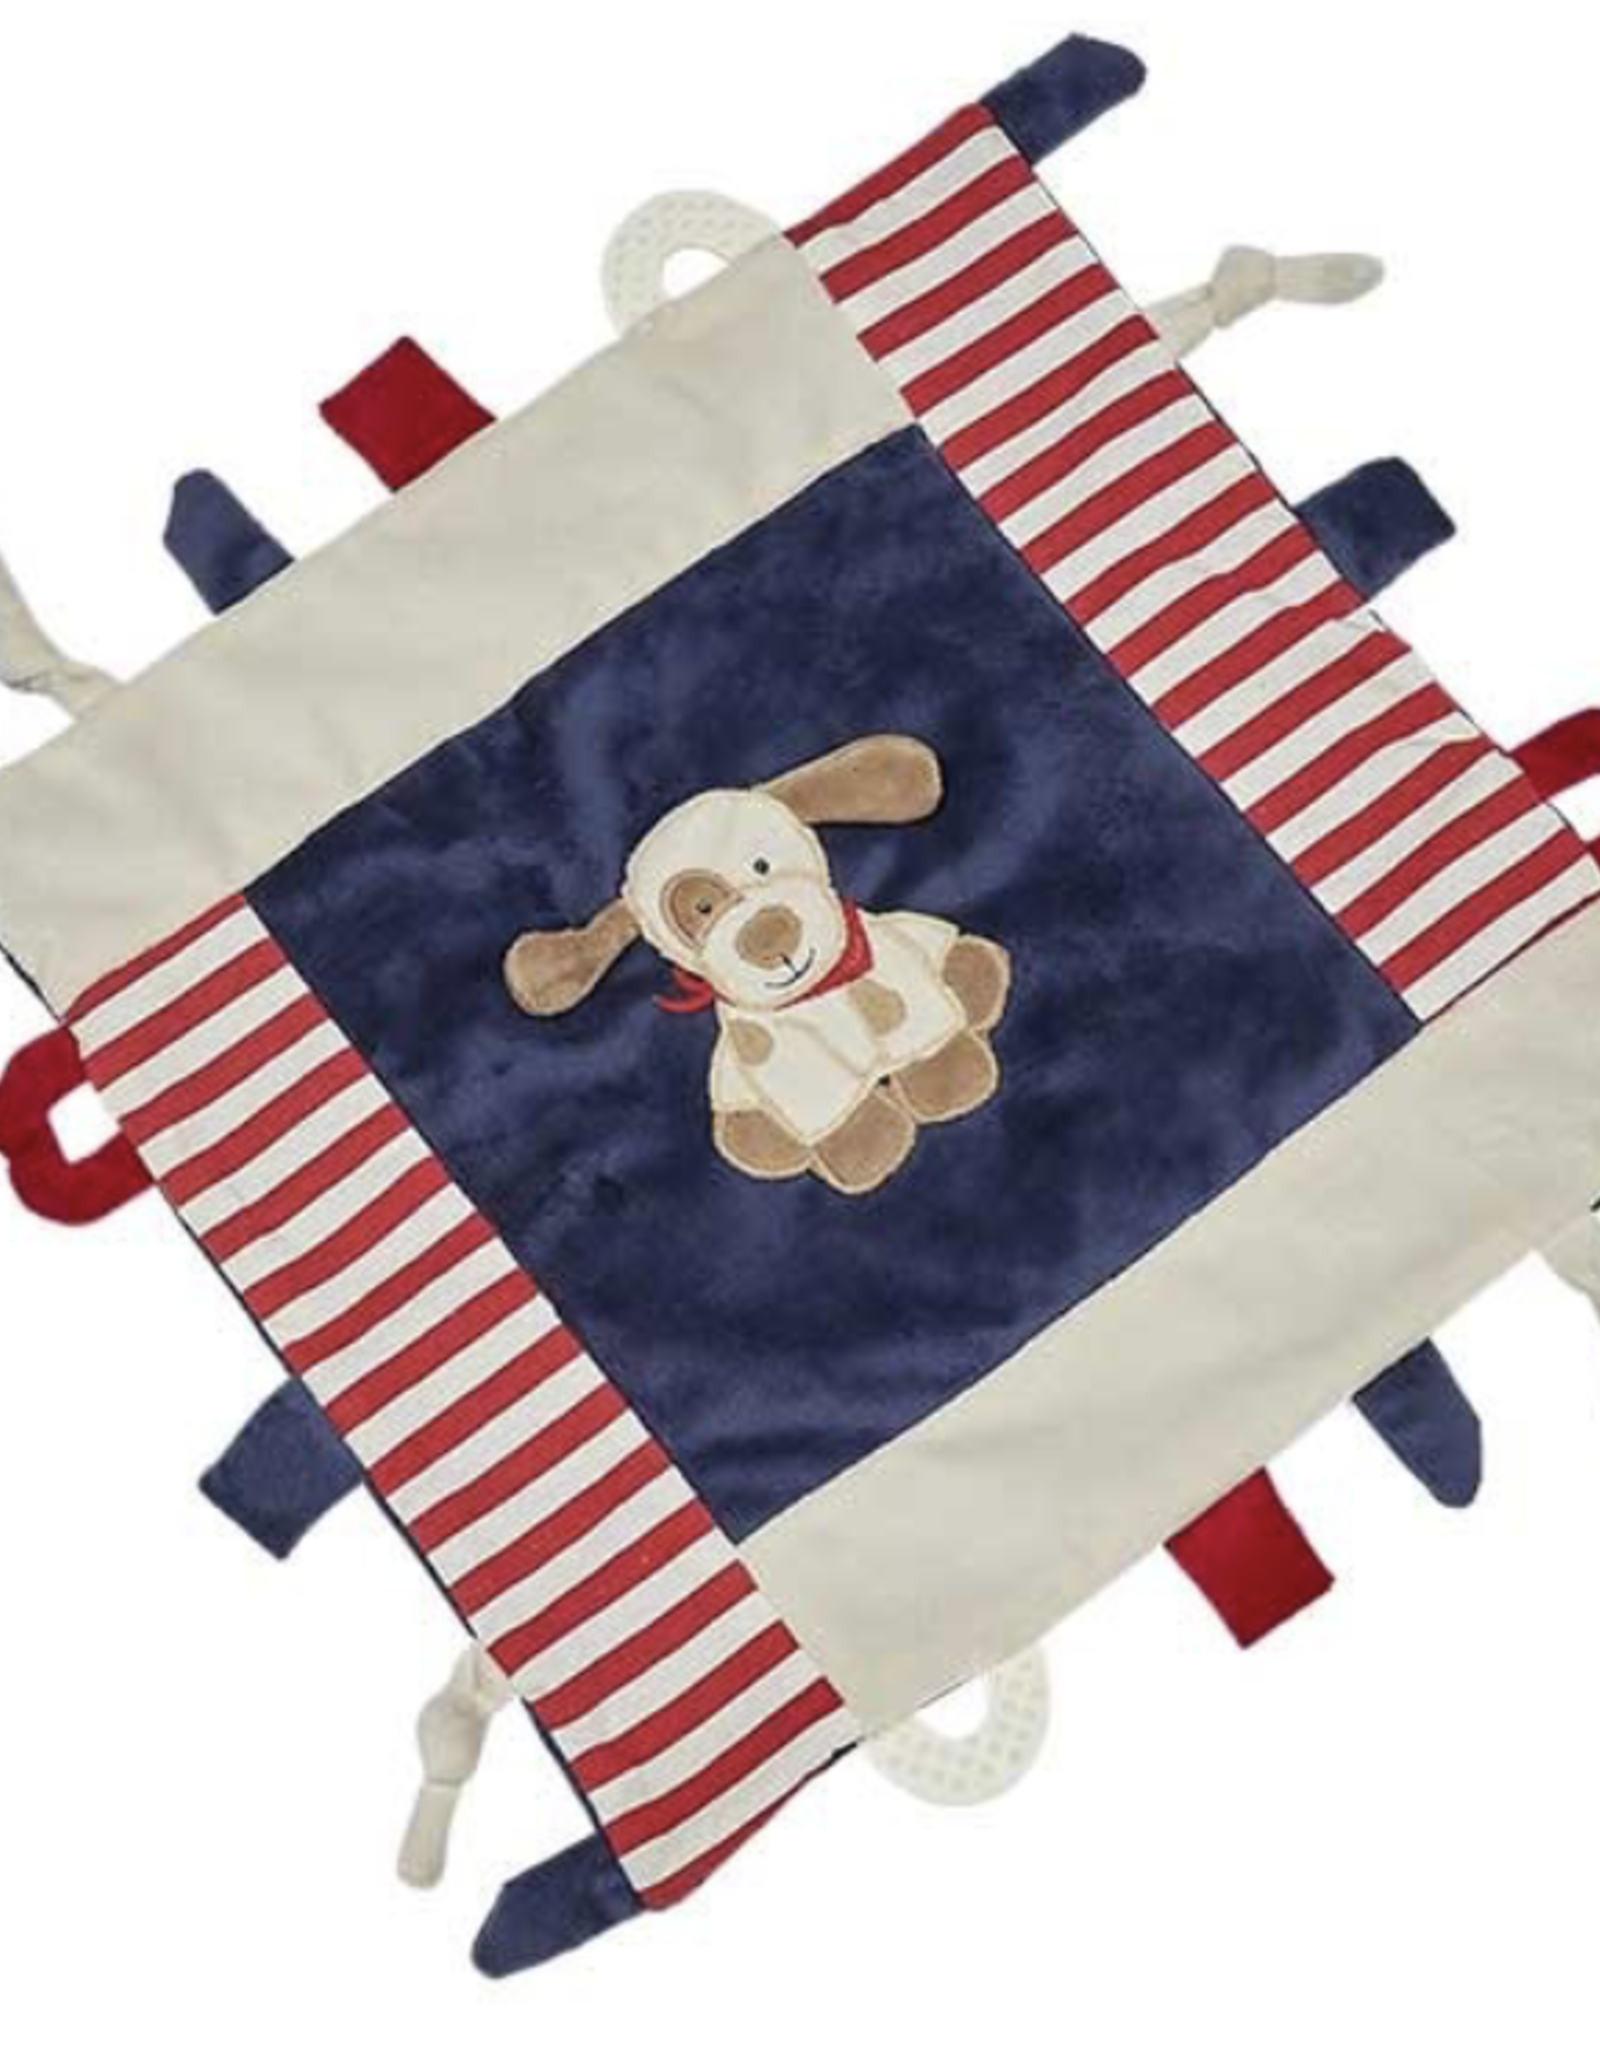 MAISON CHIC Multifunction Blanket - Max the Puppy